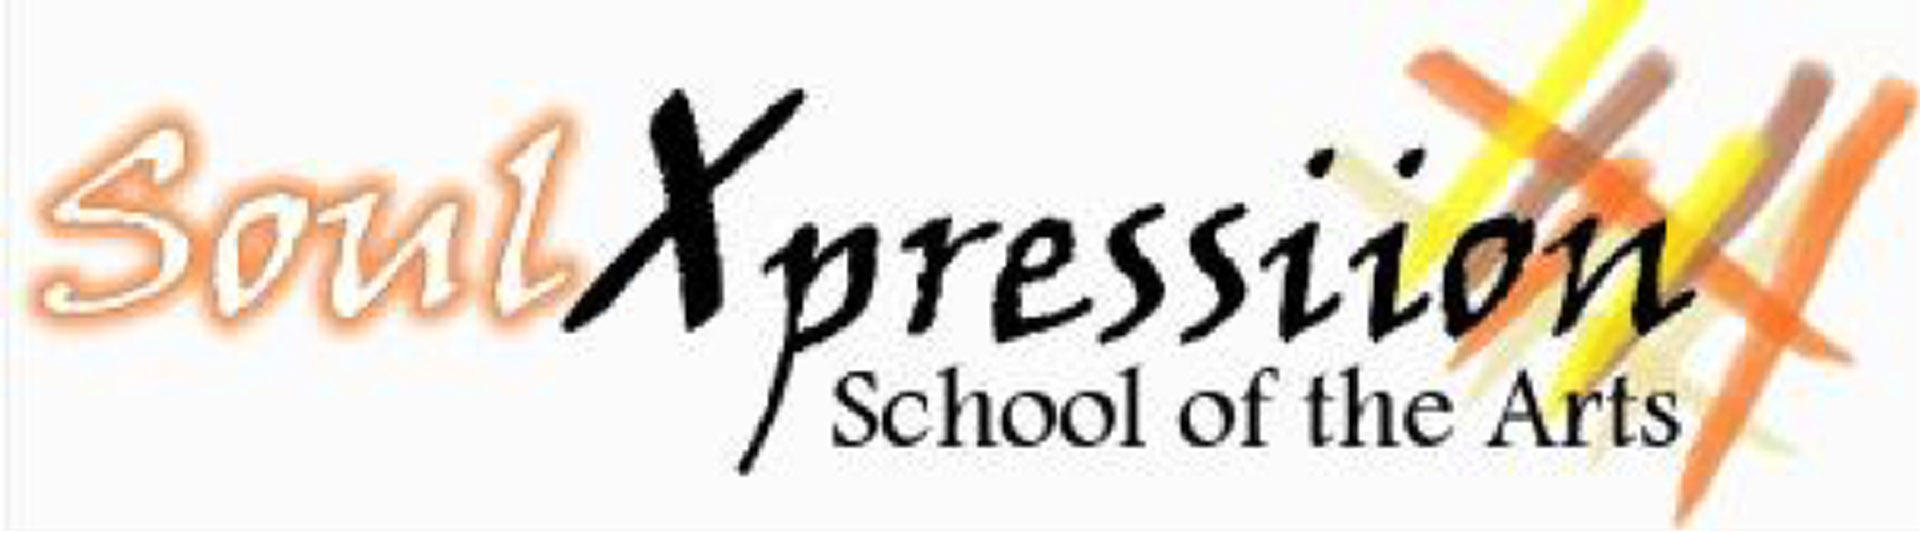 Contributing Partner — Soul Xpressiion School of the Arts    http://www.soulxpressiion.org